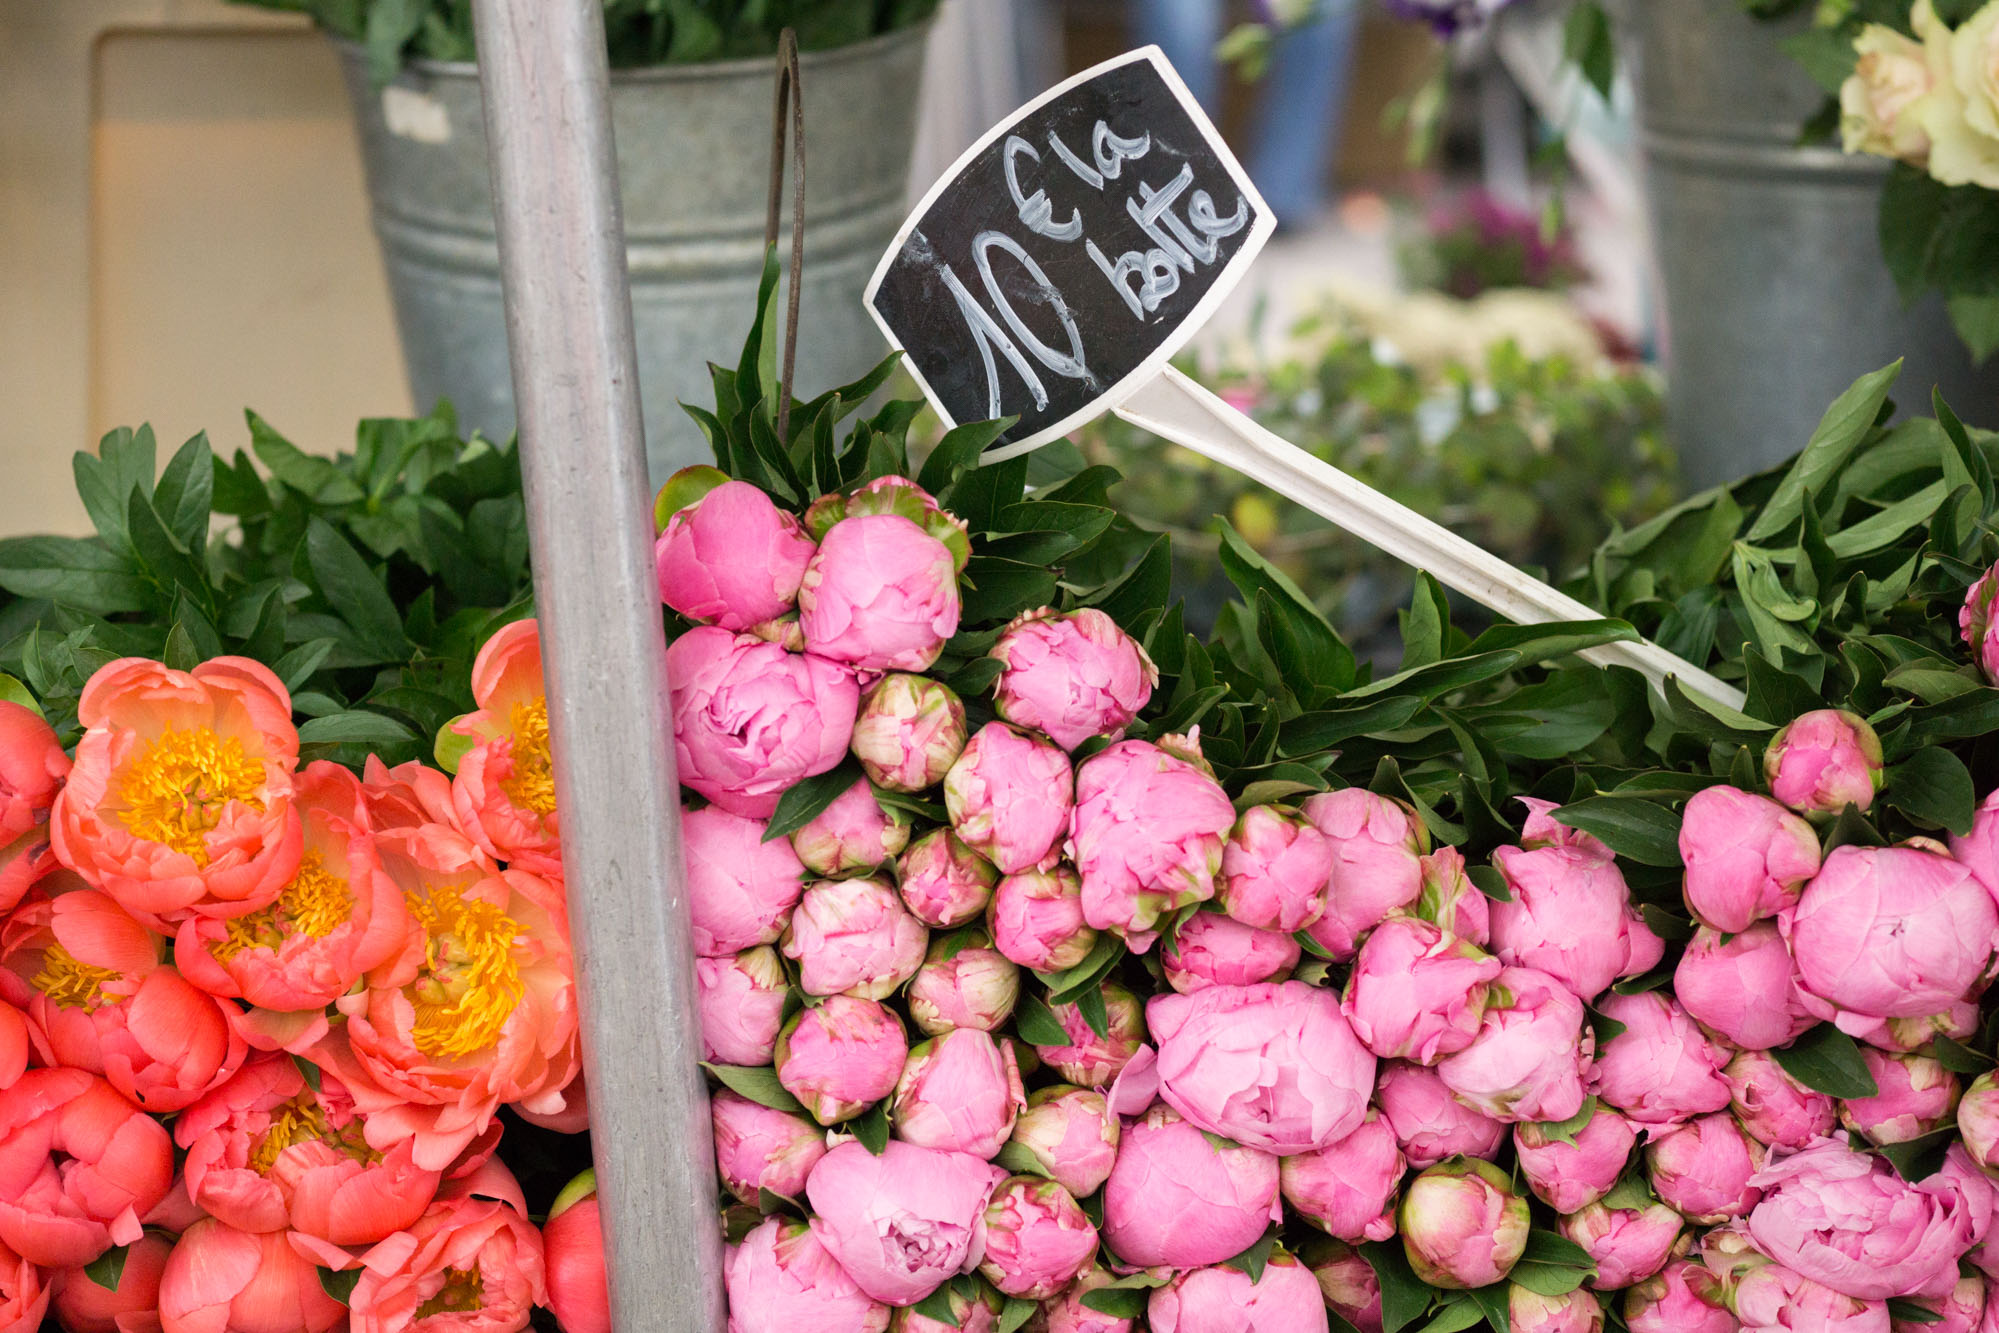 Love peony season?! Discover the best markets in Paris for beautiful peonies | Peony season in Paris | Paris Flower Markets